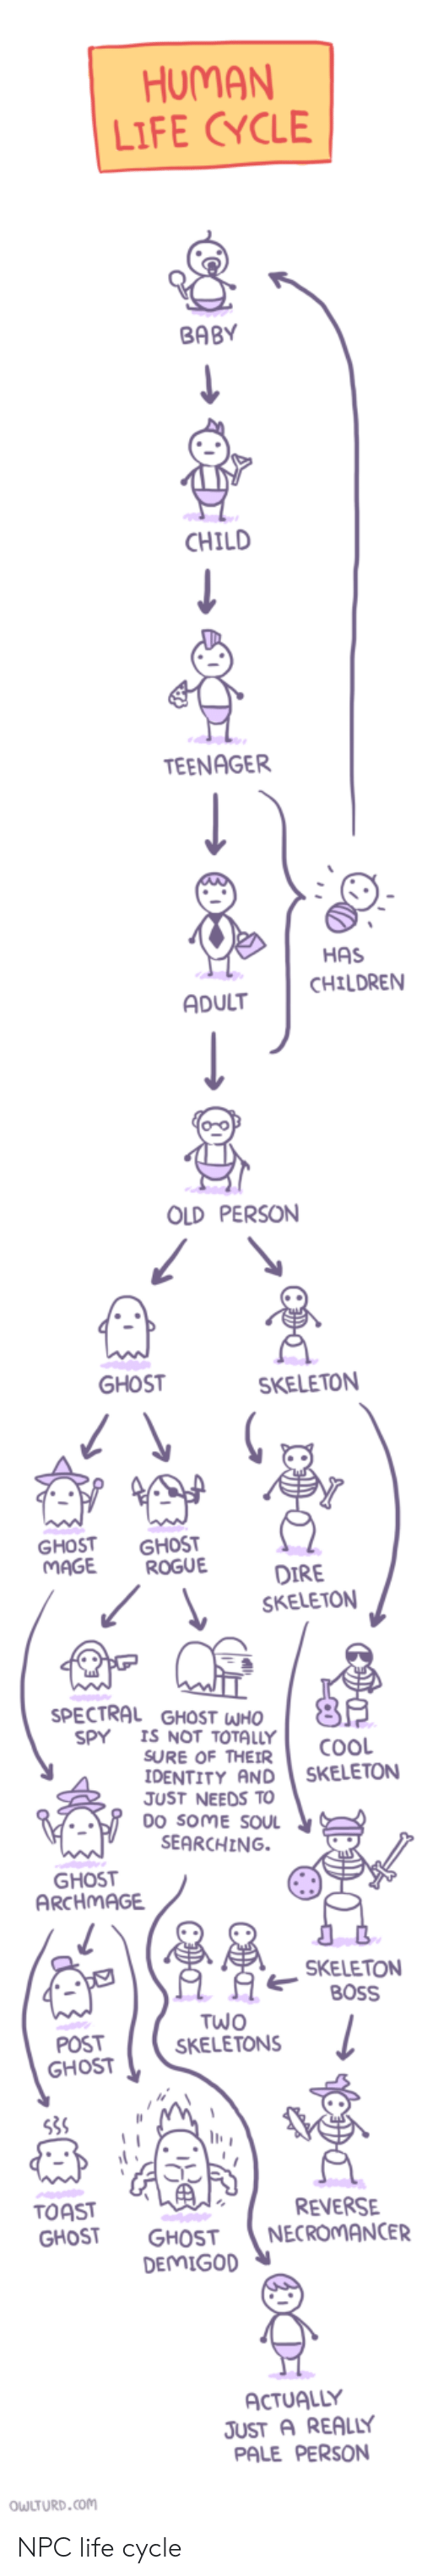 Children, Life, and Cool: HUMAN  LIFE CYCLE  BABY  CHILD  TEENAGER  HAS  CHILDREN  ADULT  OLD PERSON  SKELETON  GHOST GHOST  MAGE ROGUE  SKELETON  SPECTRAL GHOST WHO  5  SPY I NOT TOTALLY cooL  SURE OF THEIR  IDENTITY AND SKELETON  JUST NEEDS TO  DO SOME SOUL  SEARCHING.  SKELETON  80SS  POST  SKELETONS  OST  TOAST  GHOST GHOST NECROMANCER  REVERSE  DEMIGOD  ACTUALLY  JUST A REALLY  PALE PERSON  OWLTURD.com NPC life cycle